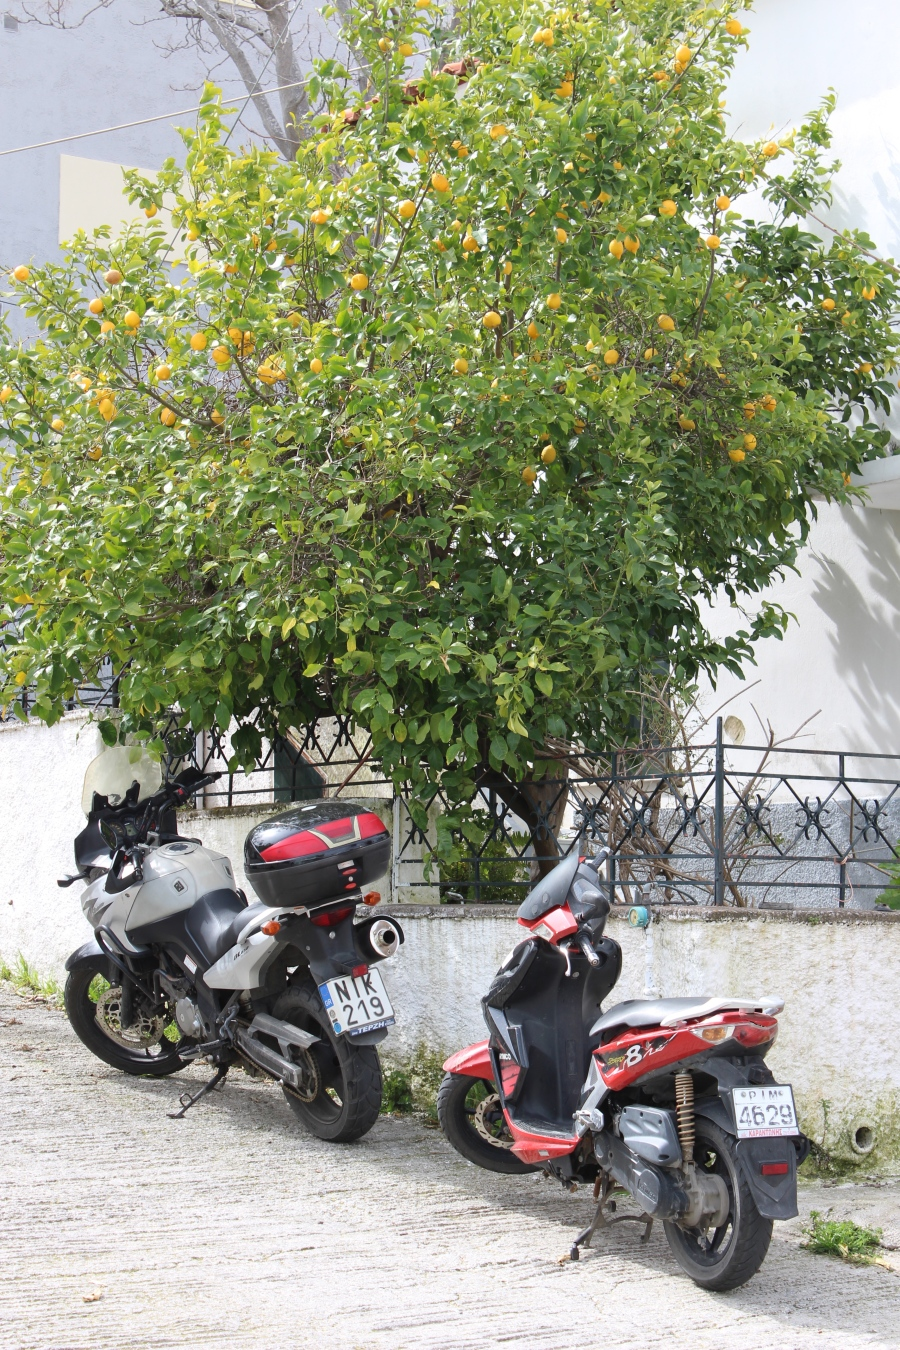 Lemon trees and scooters are everywhere in Mytilini.